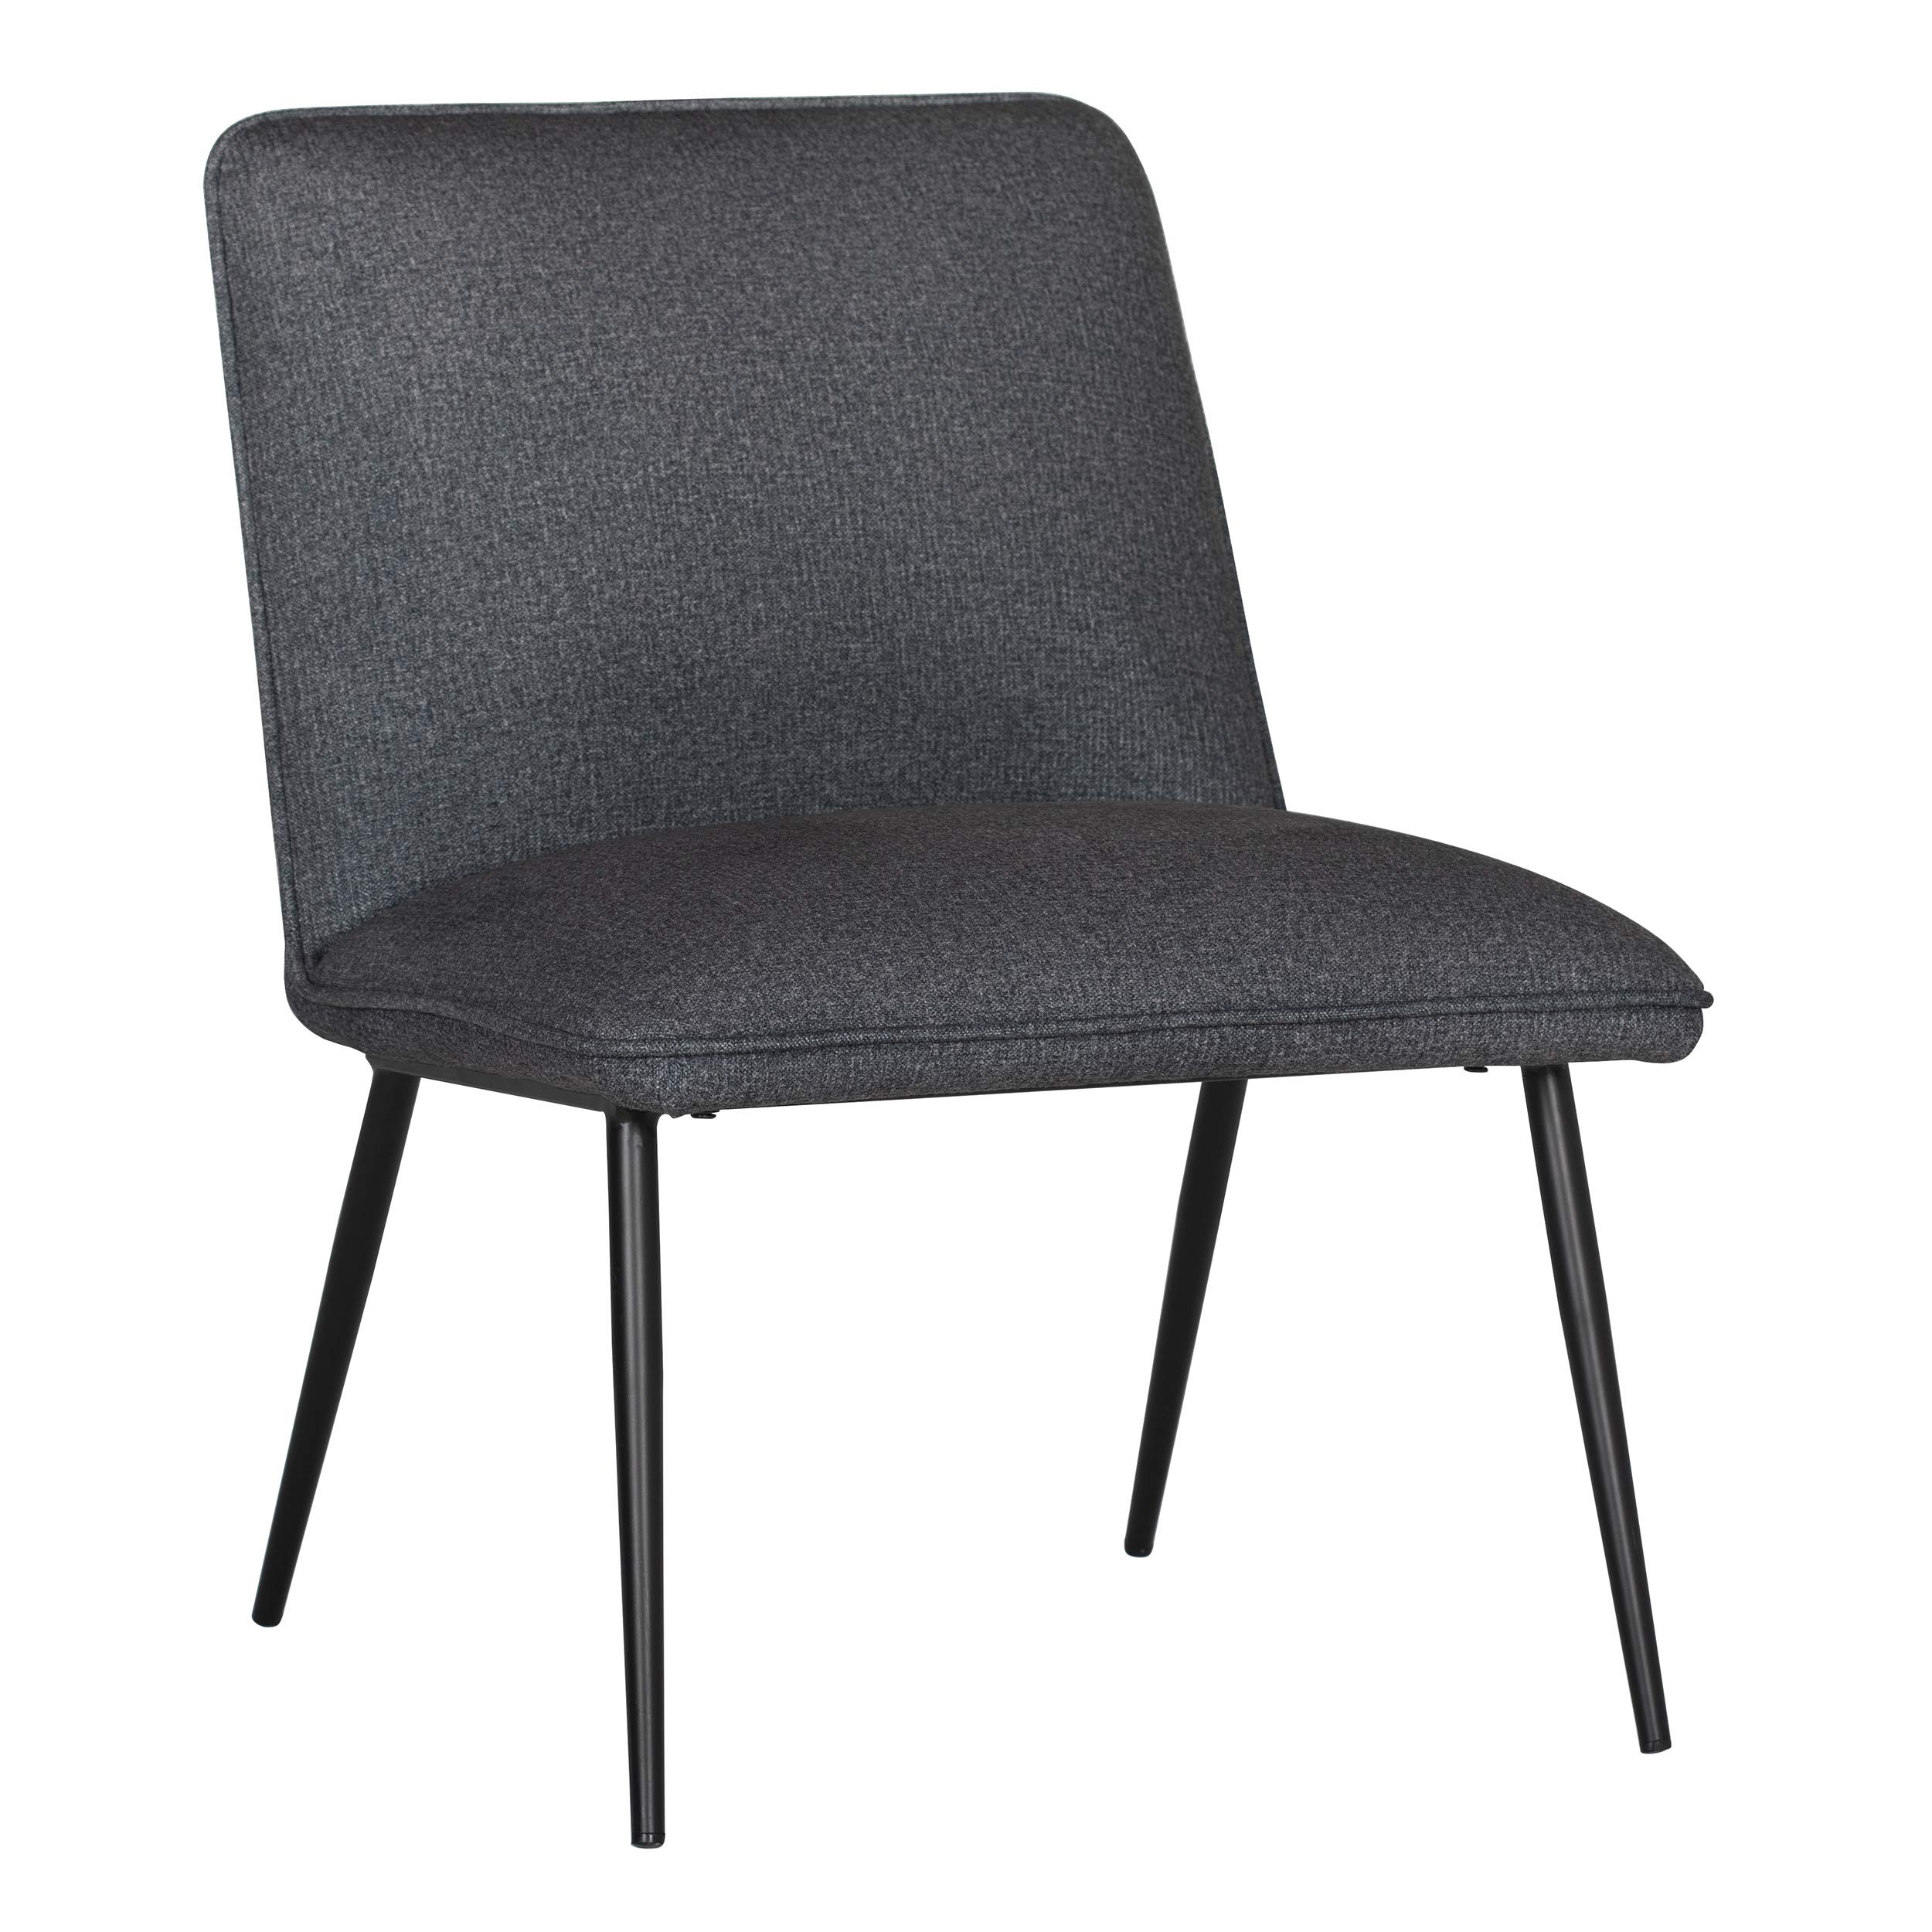 Studio Designs Home Niche Armless Slipper Bedroom Accent Chair with Black Metal Legs and Charcoal Grey Fabric